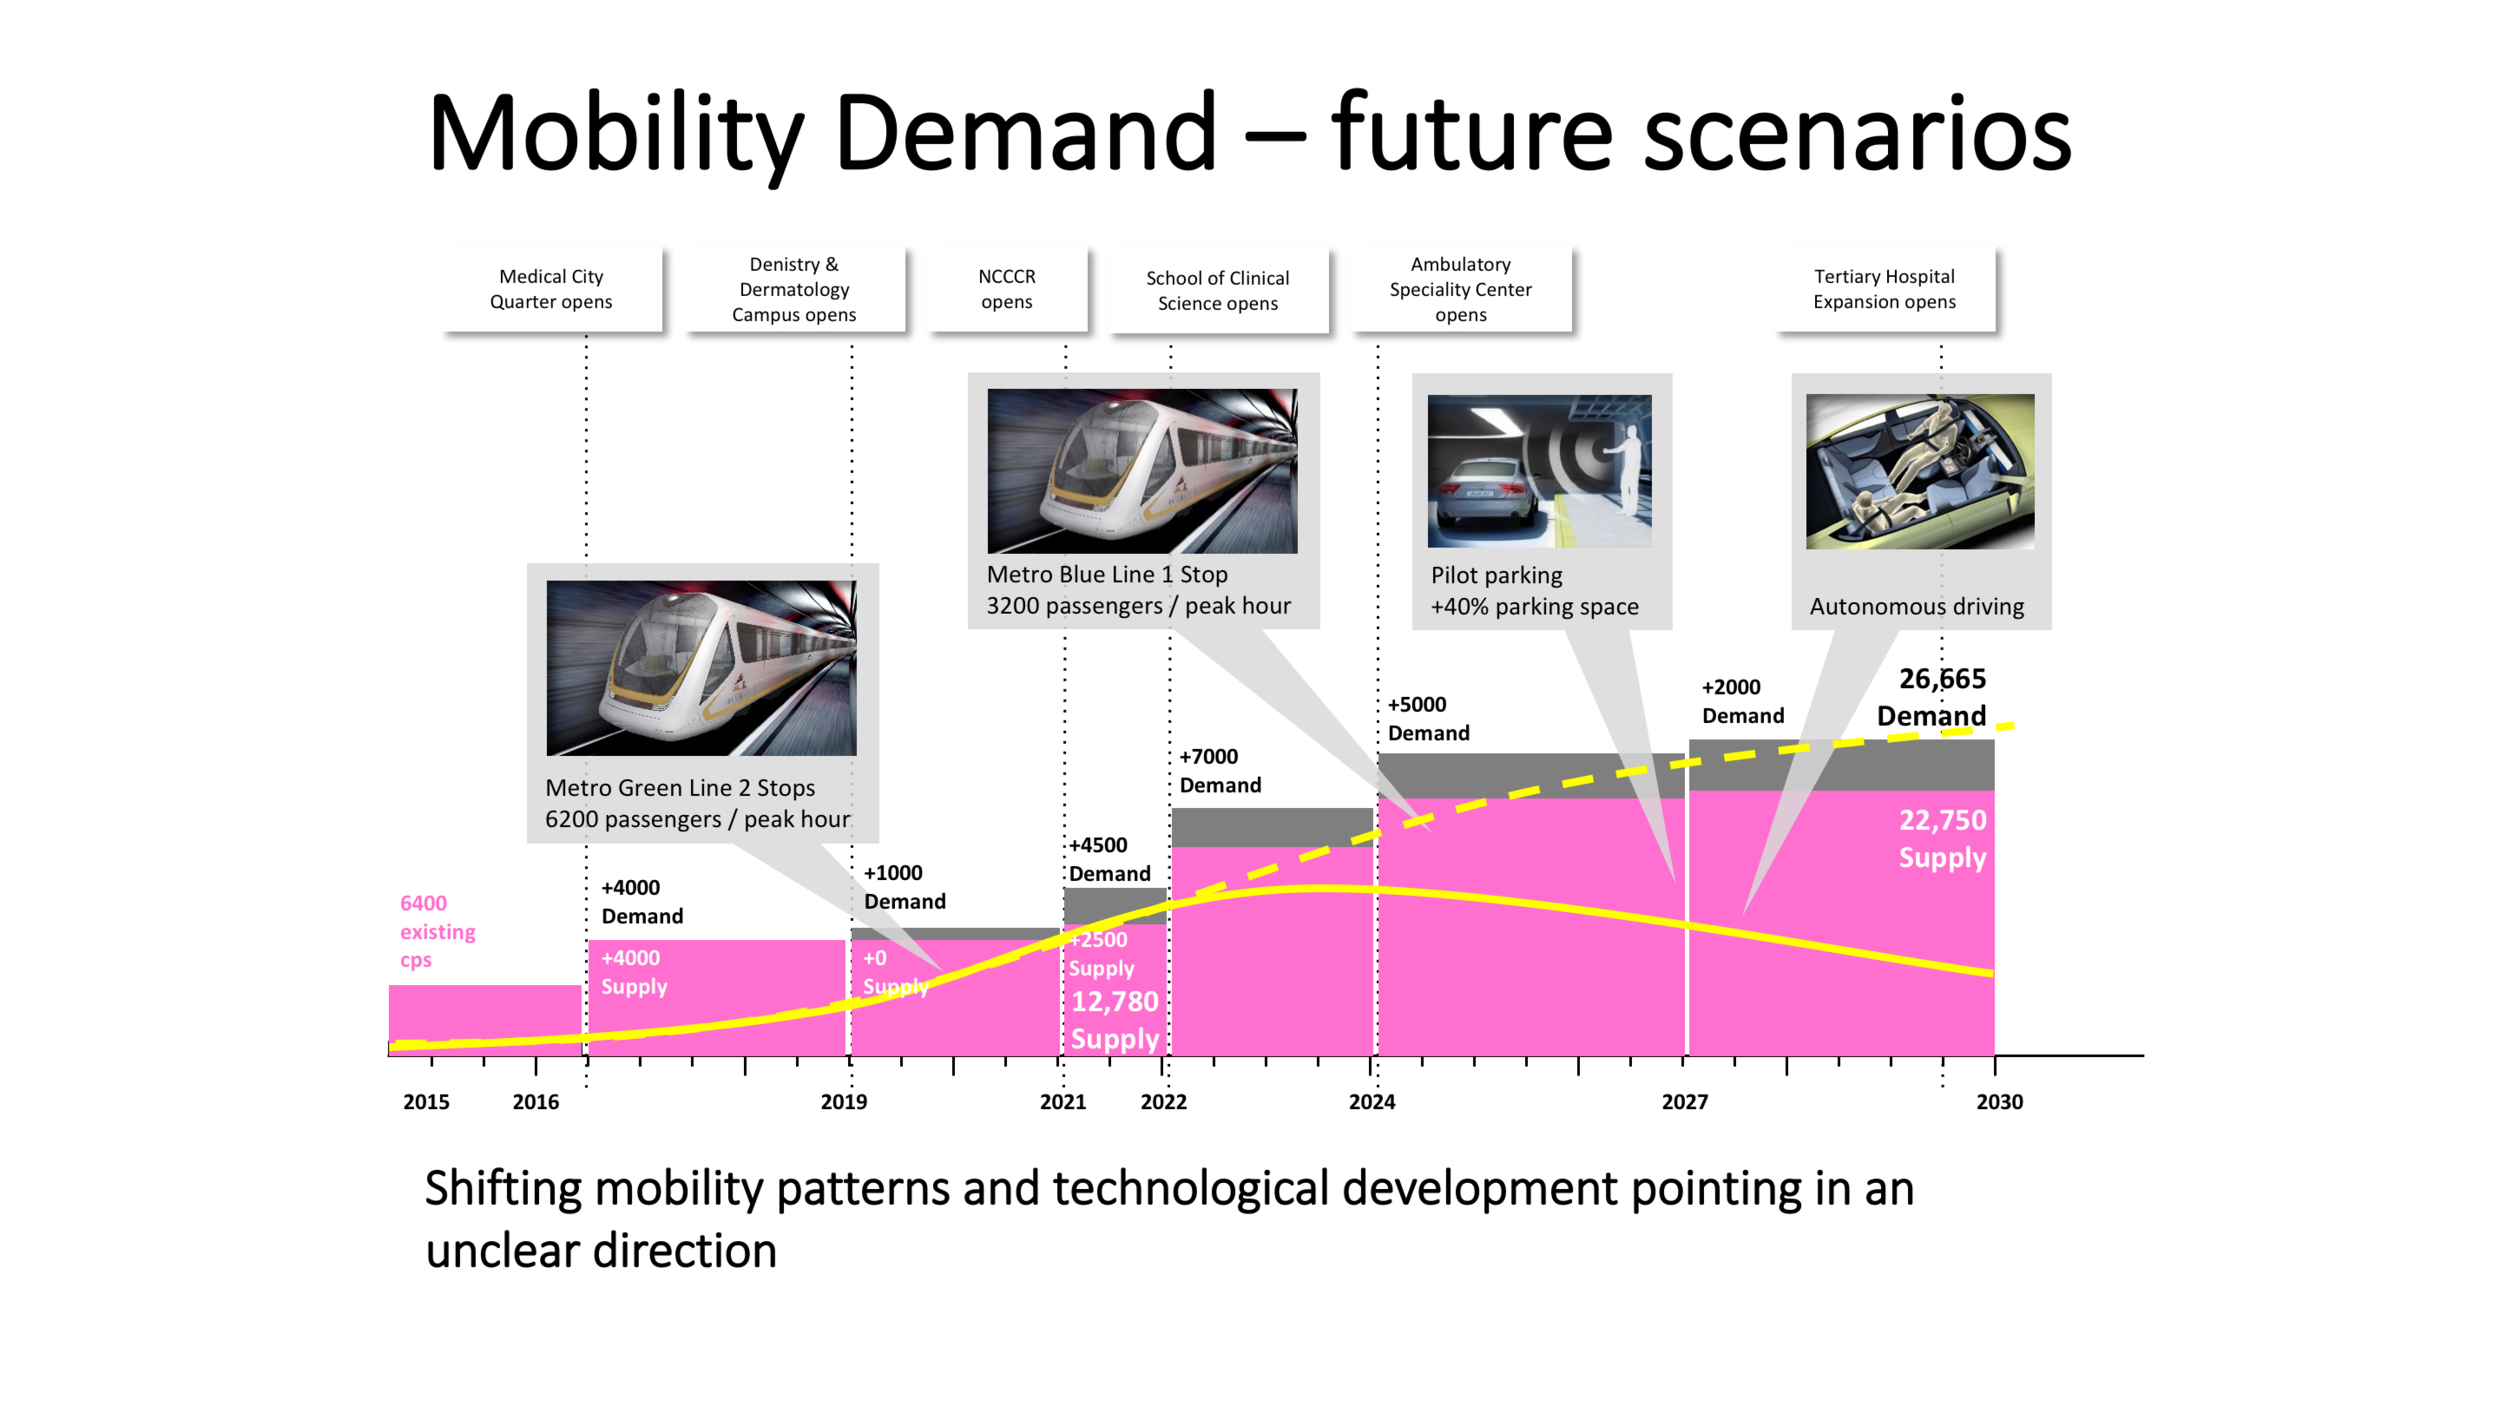 Forecast parking demand based on development of new technologies and change in mobility behavior © Urban Standards